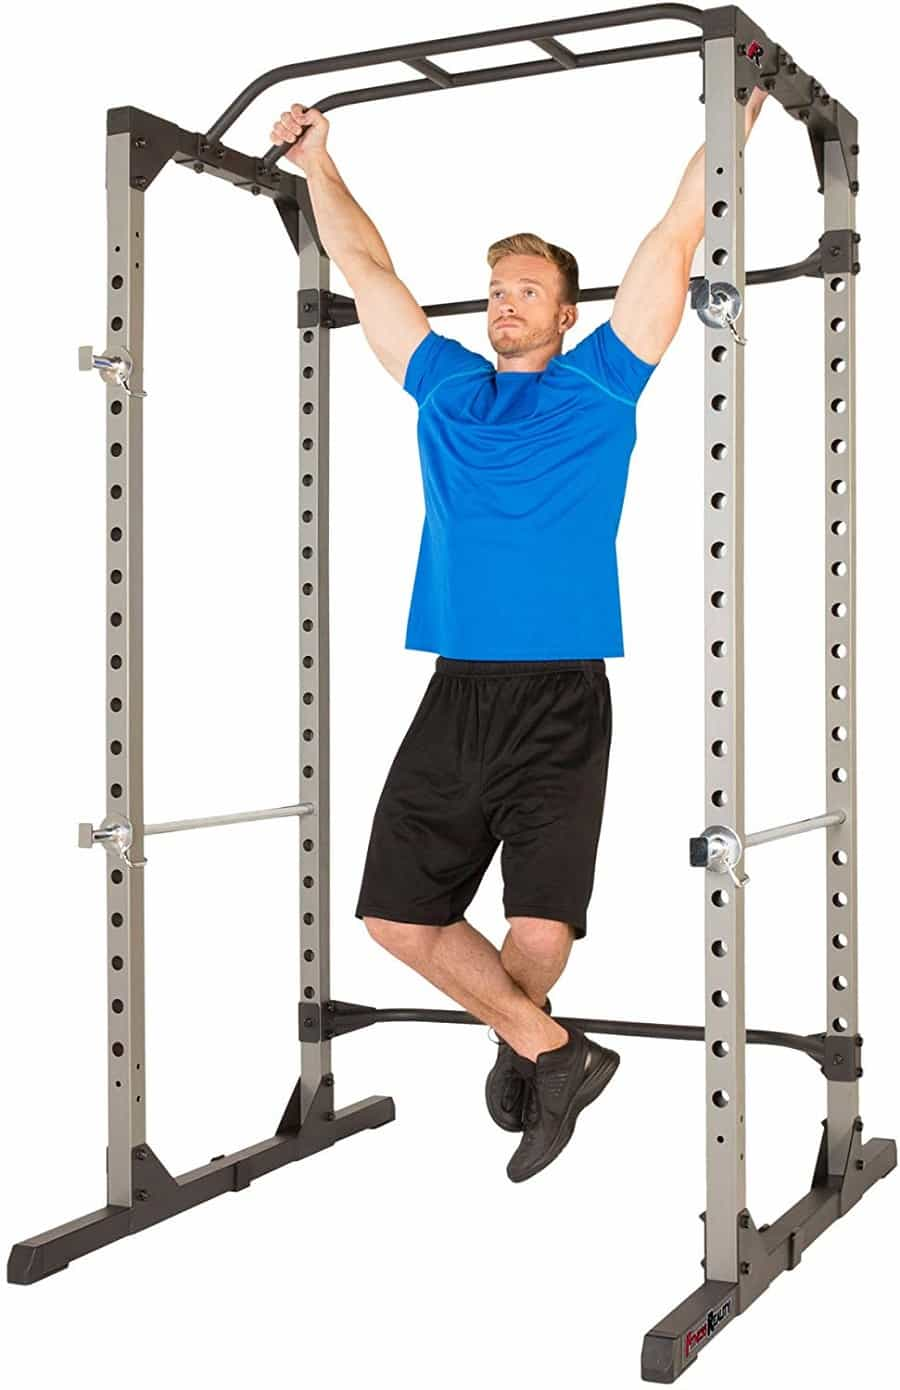 Fitness Reality 810XLT rack with pull up bar